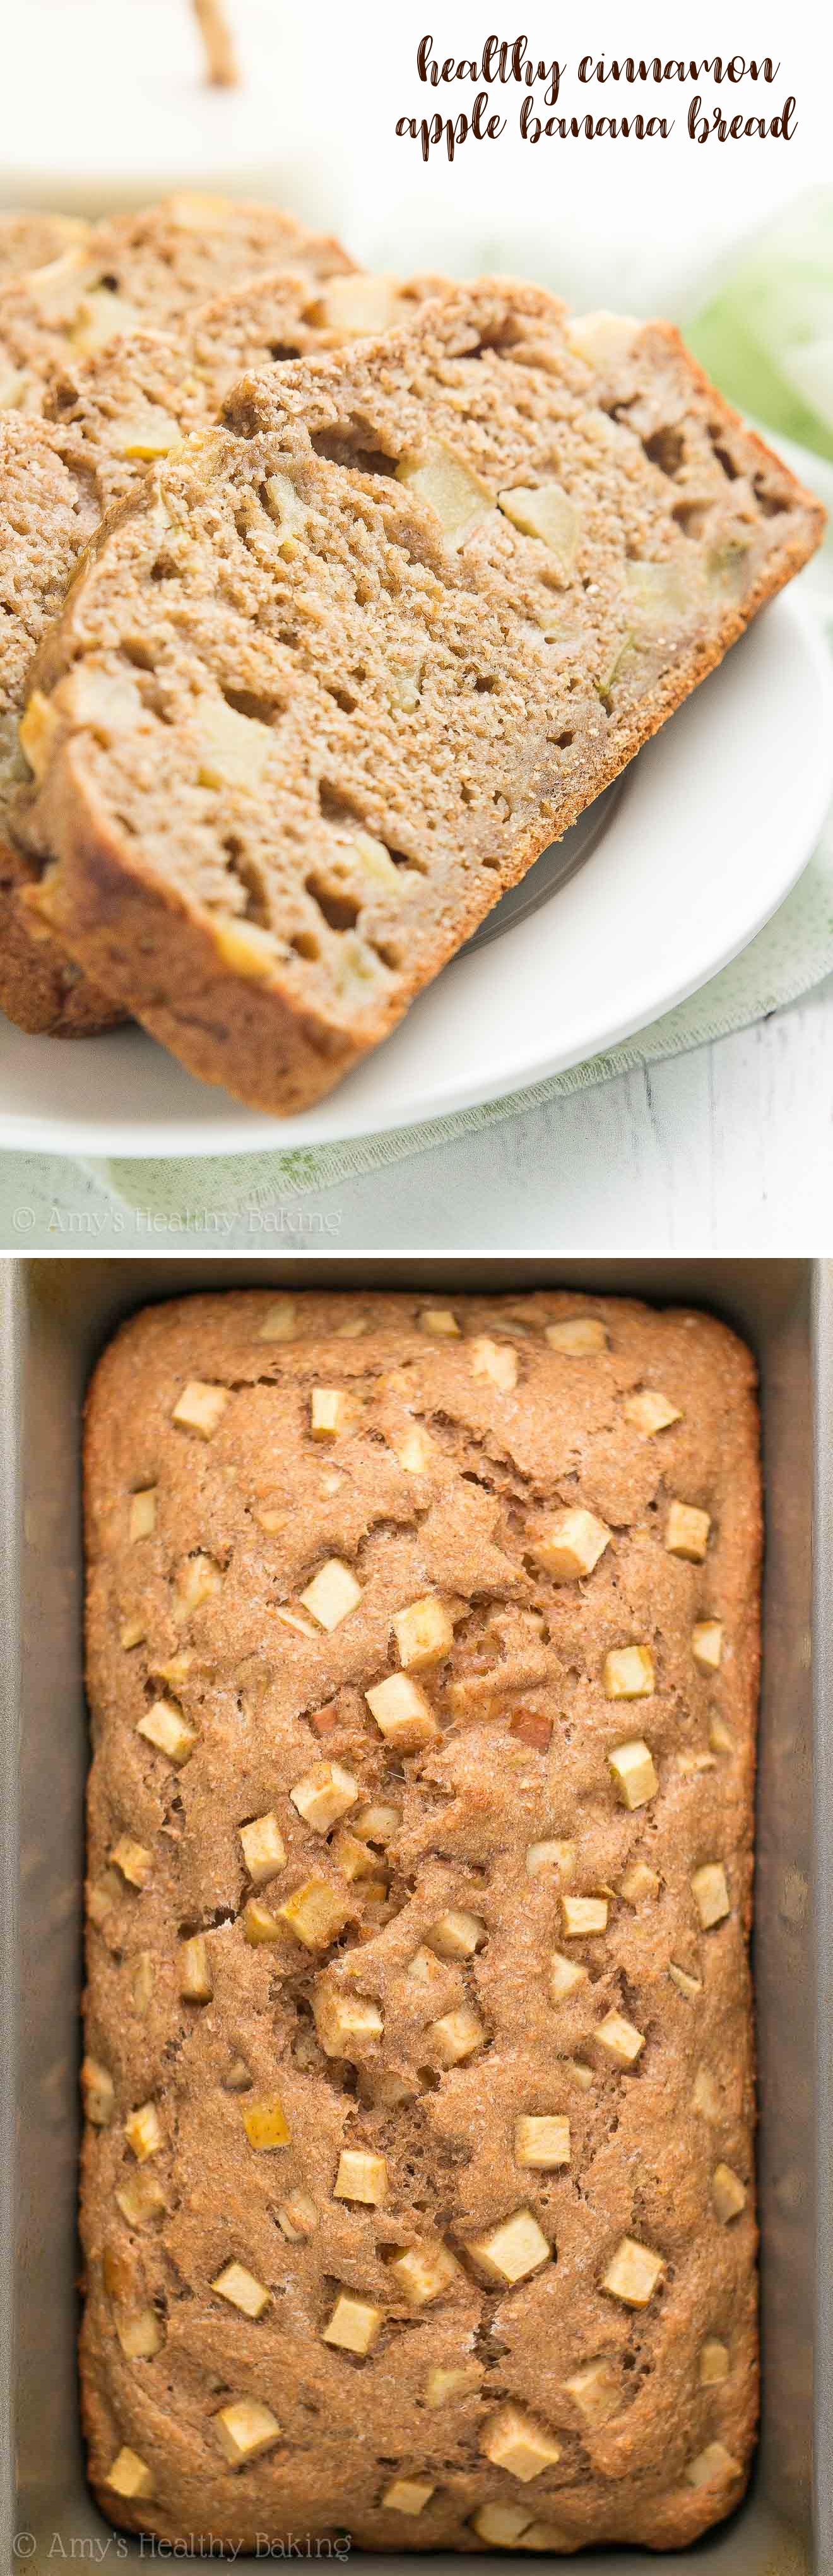 Healthy Cinnamon Apple Banana Bread -- only 108 calories & tastes AMAZING! Plus it's kid-approved & such an easy recipe!